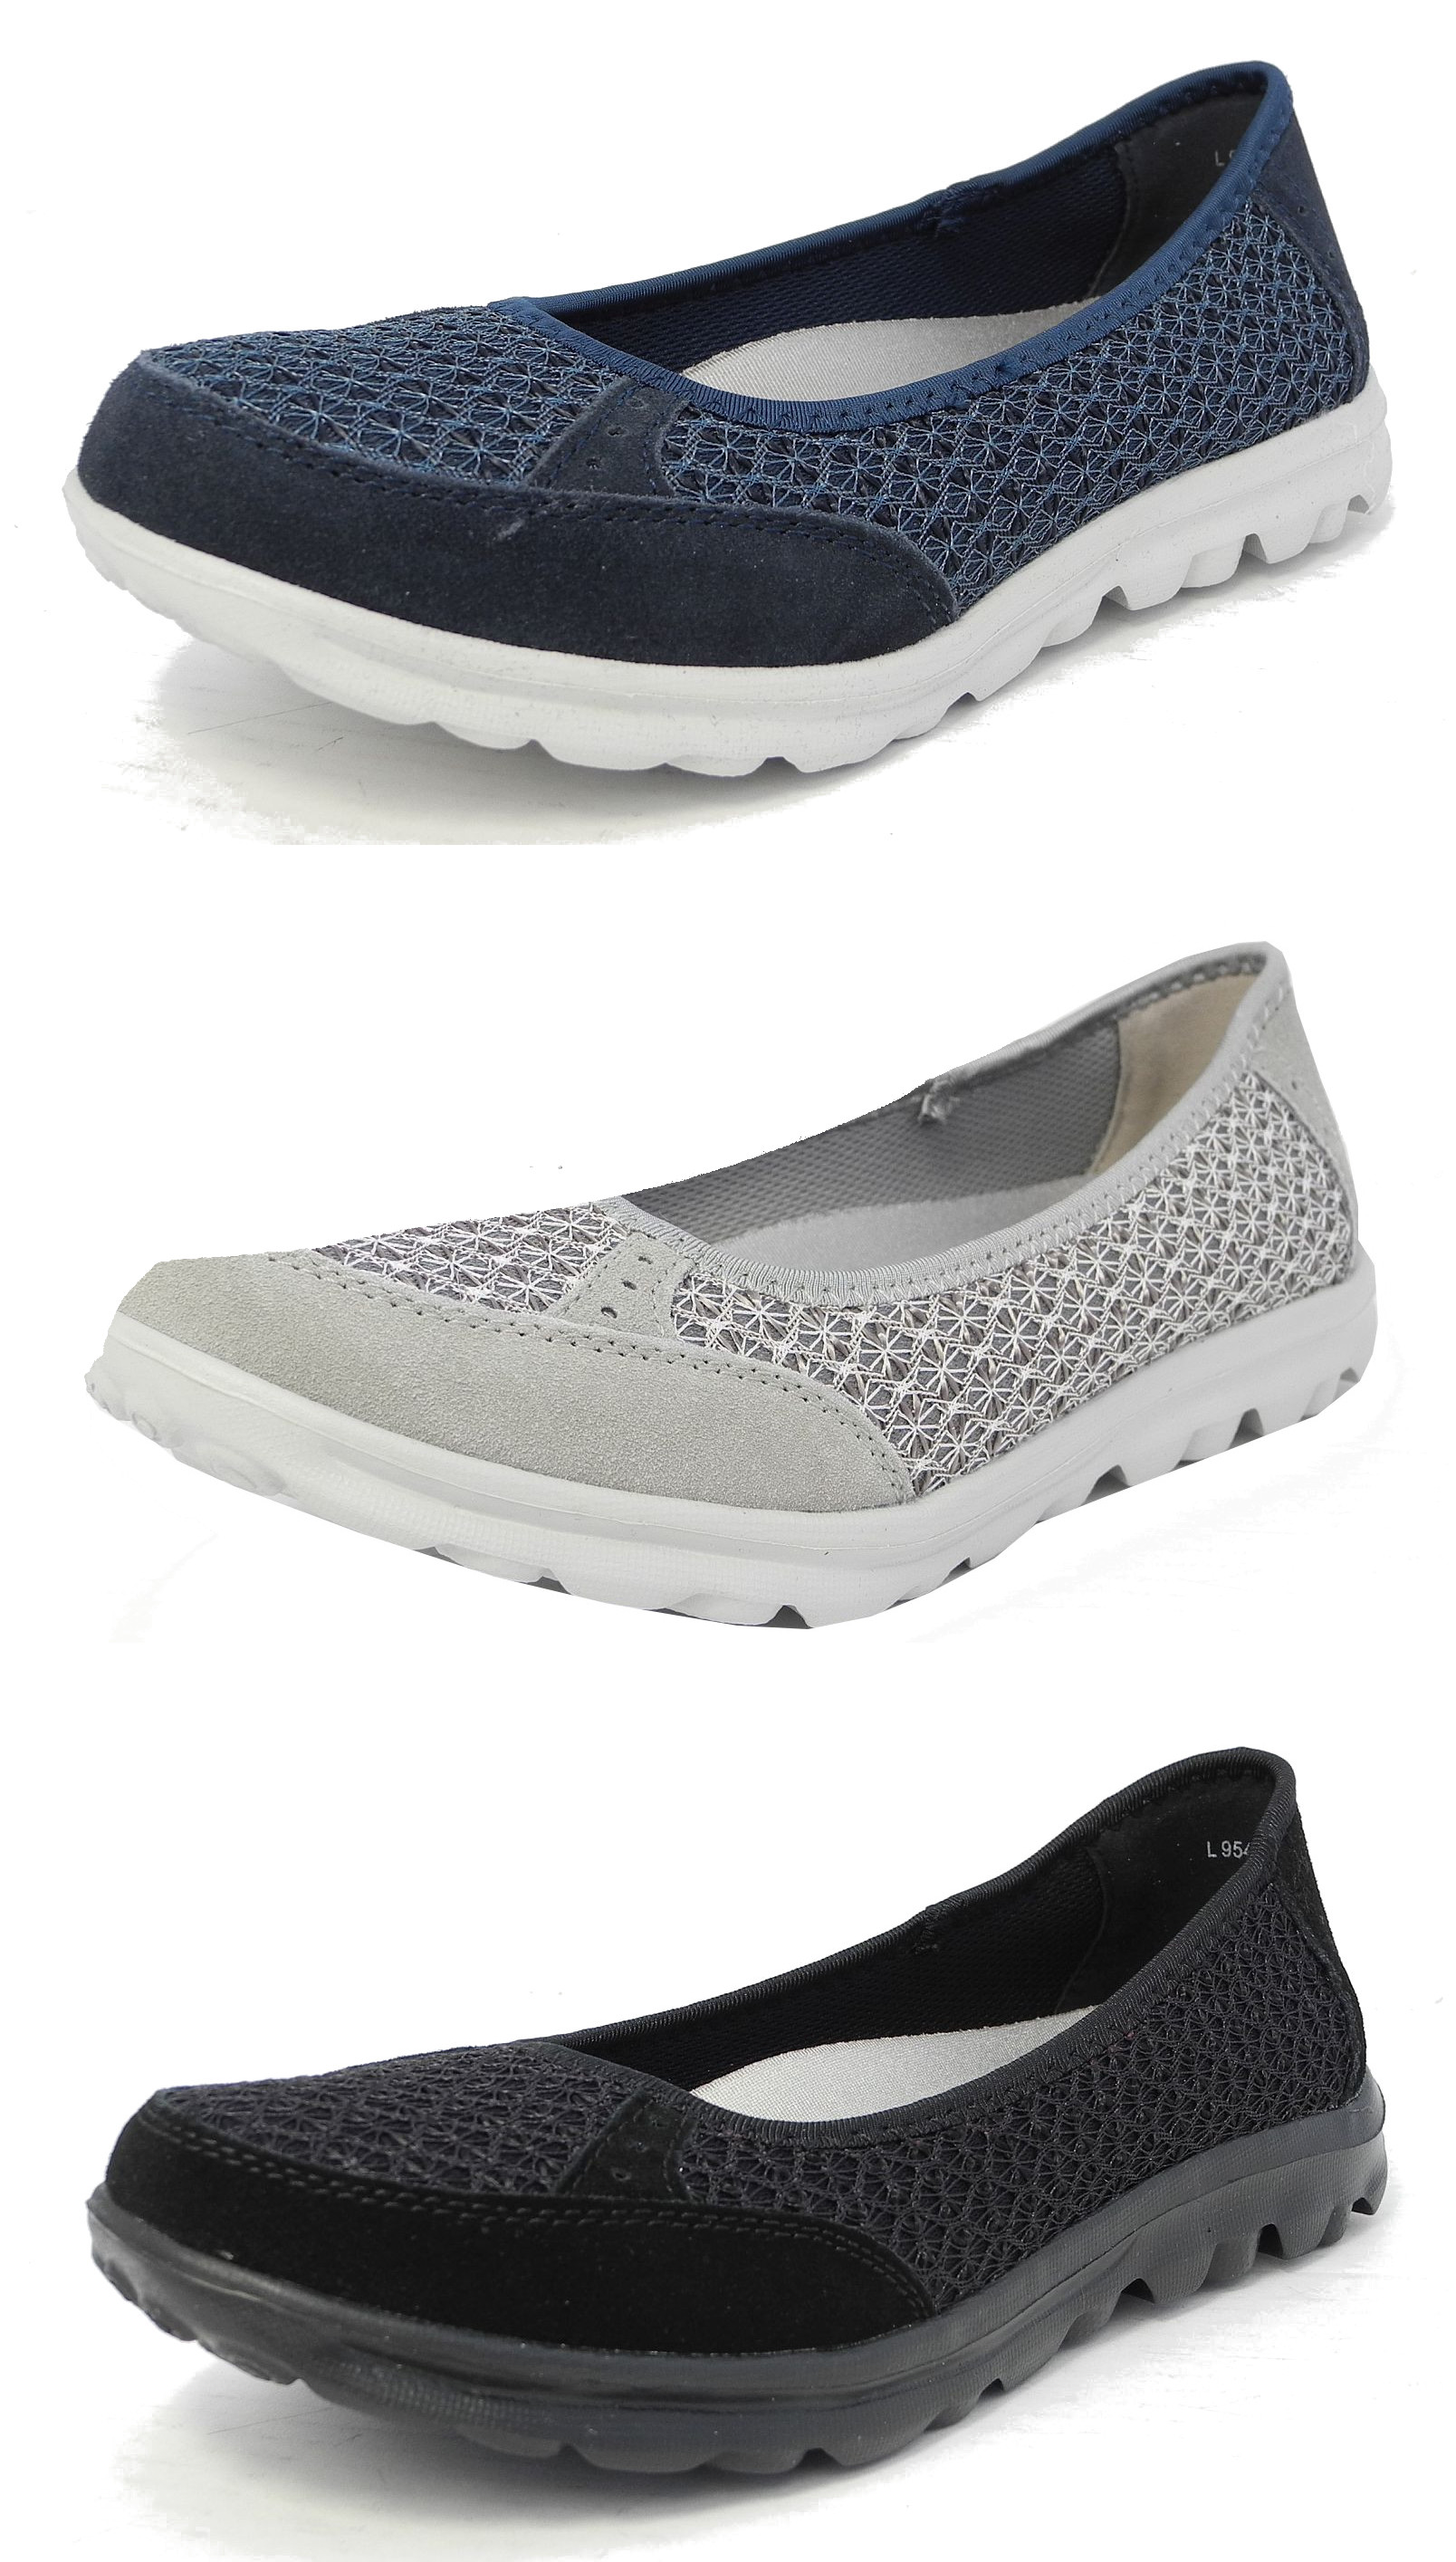 Womens Arch Support Lightweight Leather Mesh Shoes Pumps Memory Foam Size 3-9 | eBay